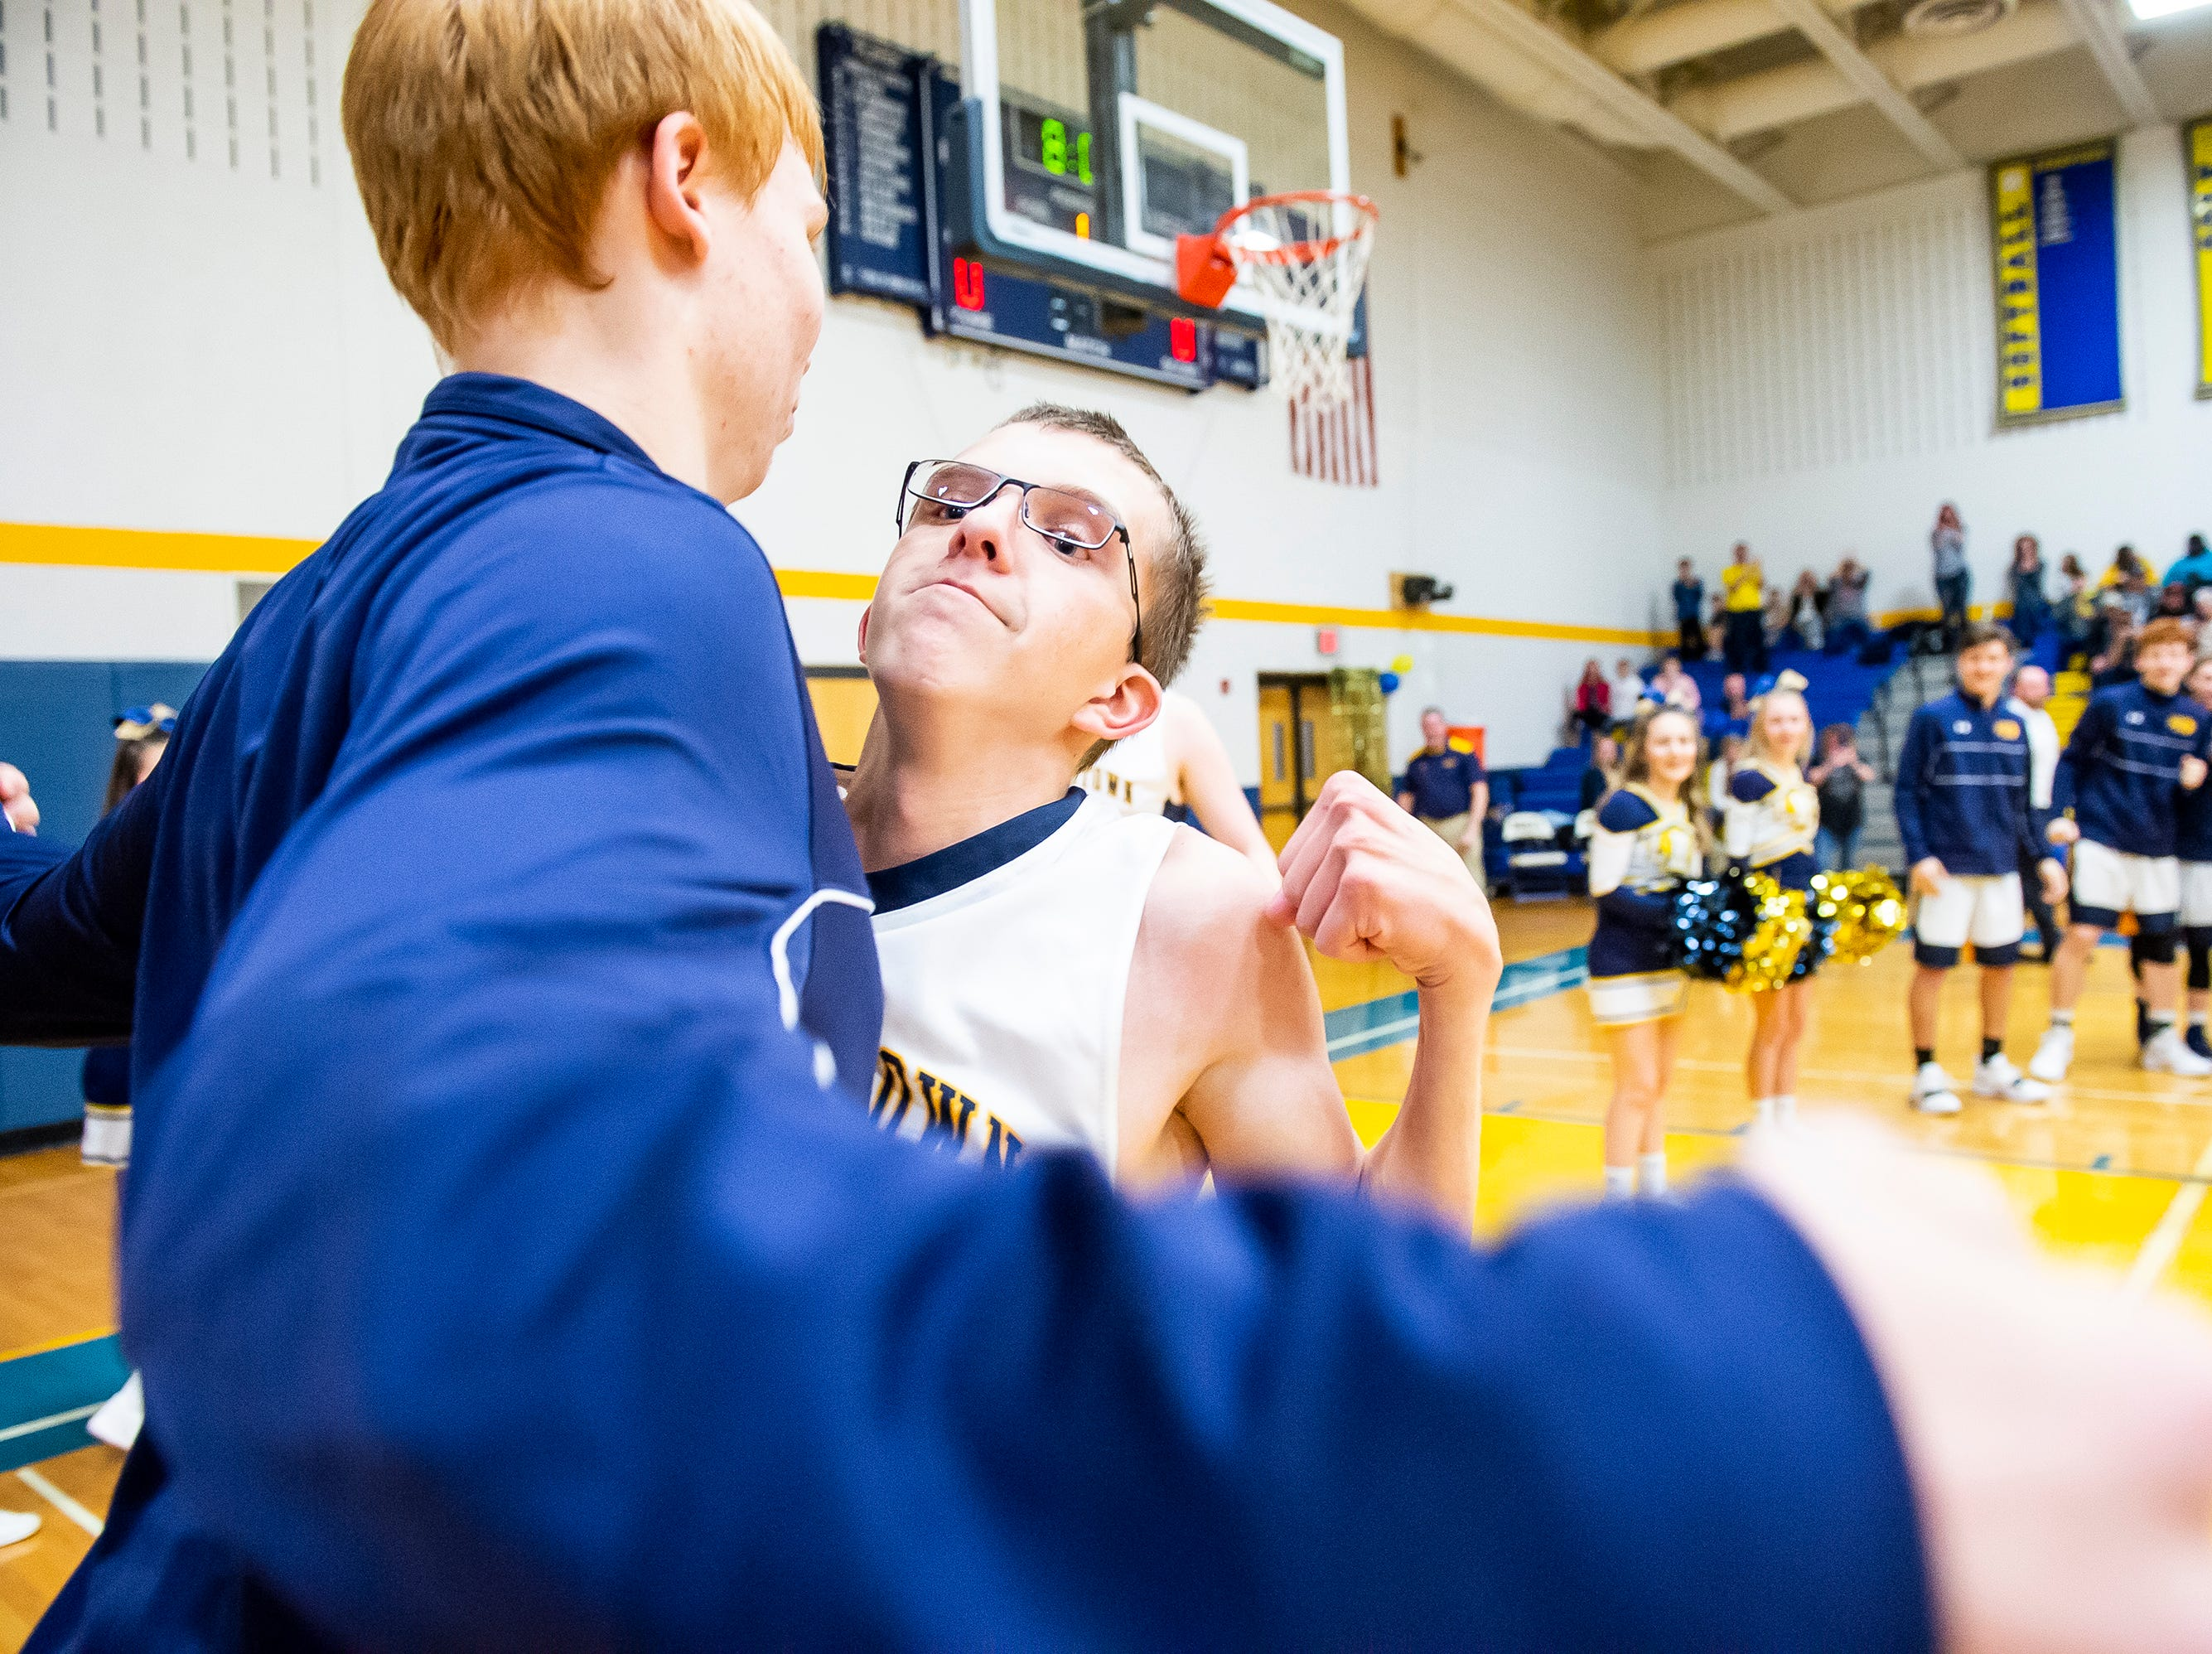 Littlestown's Ben Blankenship chest bumps teammate Daniel Gazmen as he is introduced during the starting lineups prior to a game against Biglerville Tuesday, February 5, 2019. Blankenship, one of the team's managers, started in the number 23 jersey and scored the first points of the game as the Bolts won 54-46 on senior night.